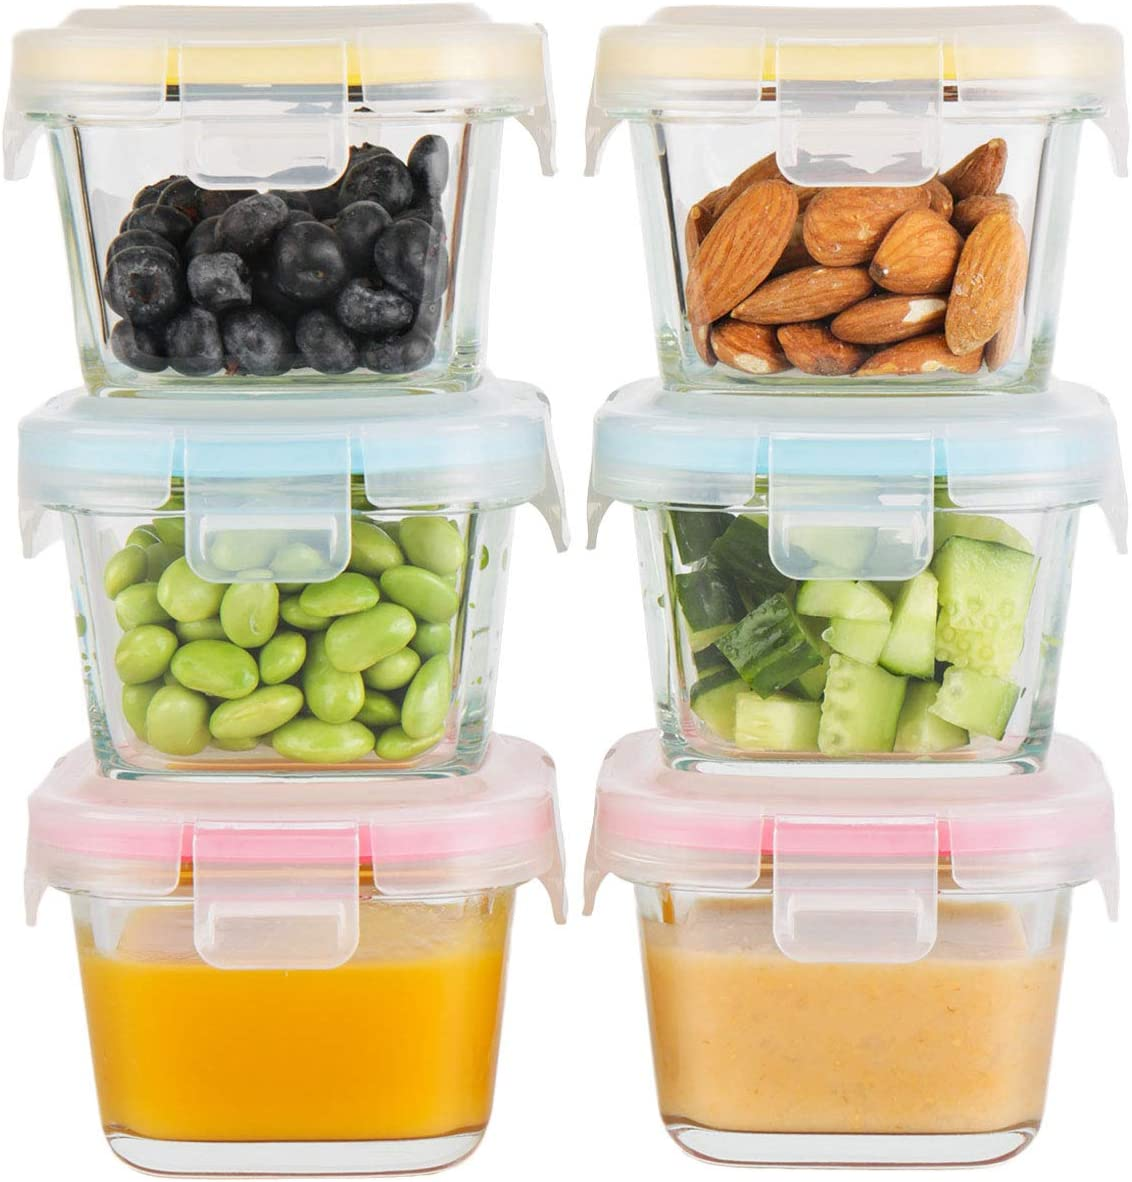 Doonmi - Glass Baby Food Storage Containers (5.4oz, 6-Pack), Small Containers with Airtight BPA - Free Locking Lids, Microwave, Dishwasher, Freezer Safe, Perfect for Infant & Babies.